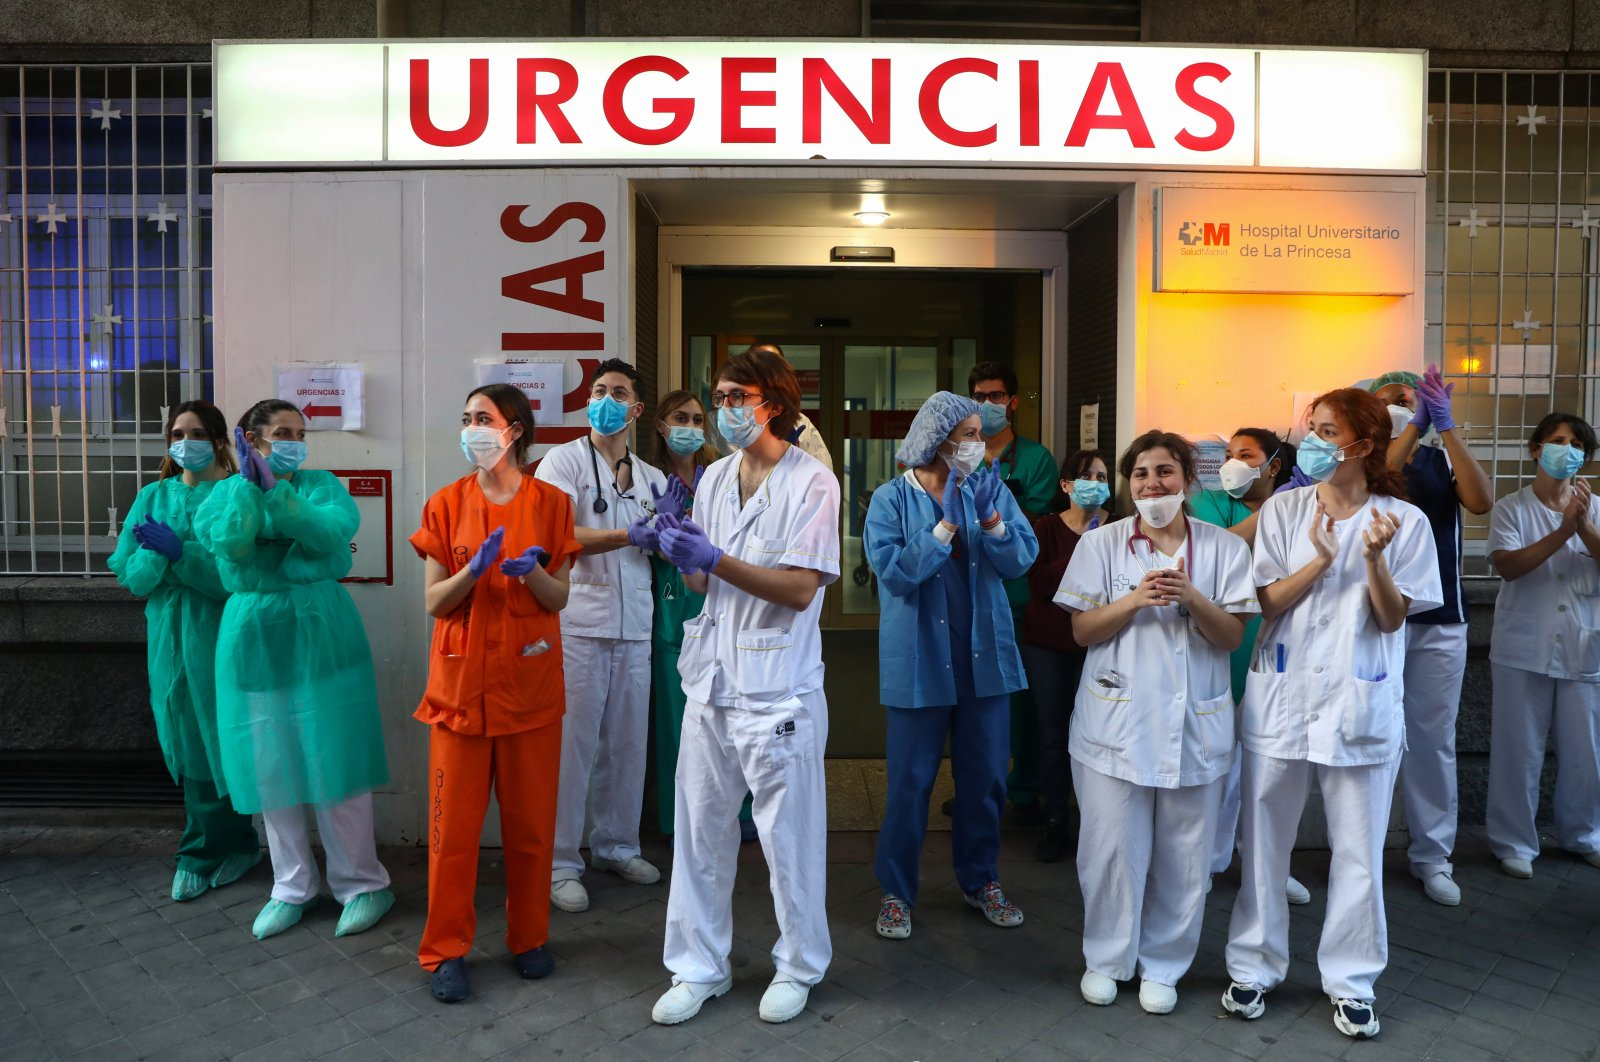 Medical staff from La Princesa hospital react as neighbours applaud from their balconies in support for healthcare workers, Madrid, April 5, 2020. (REUTERS Photo)